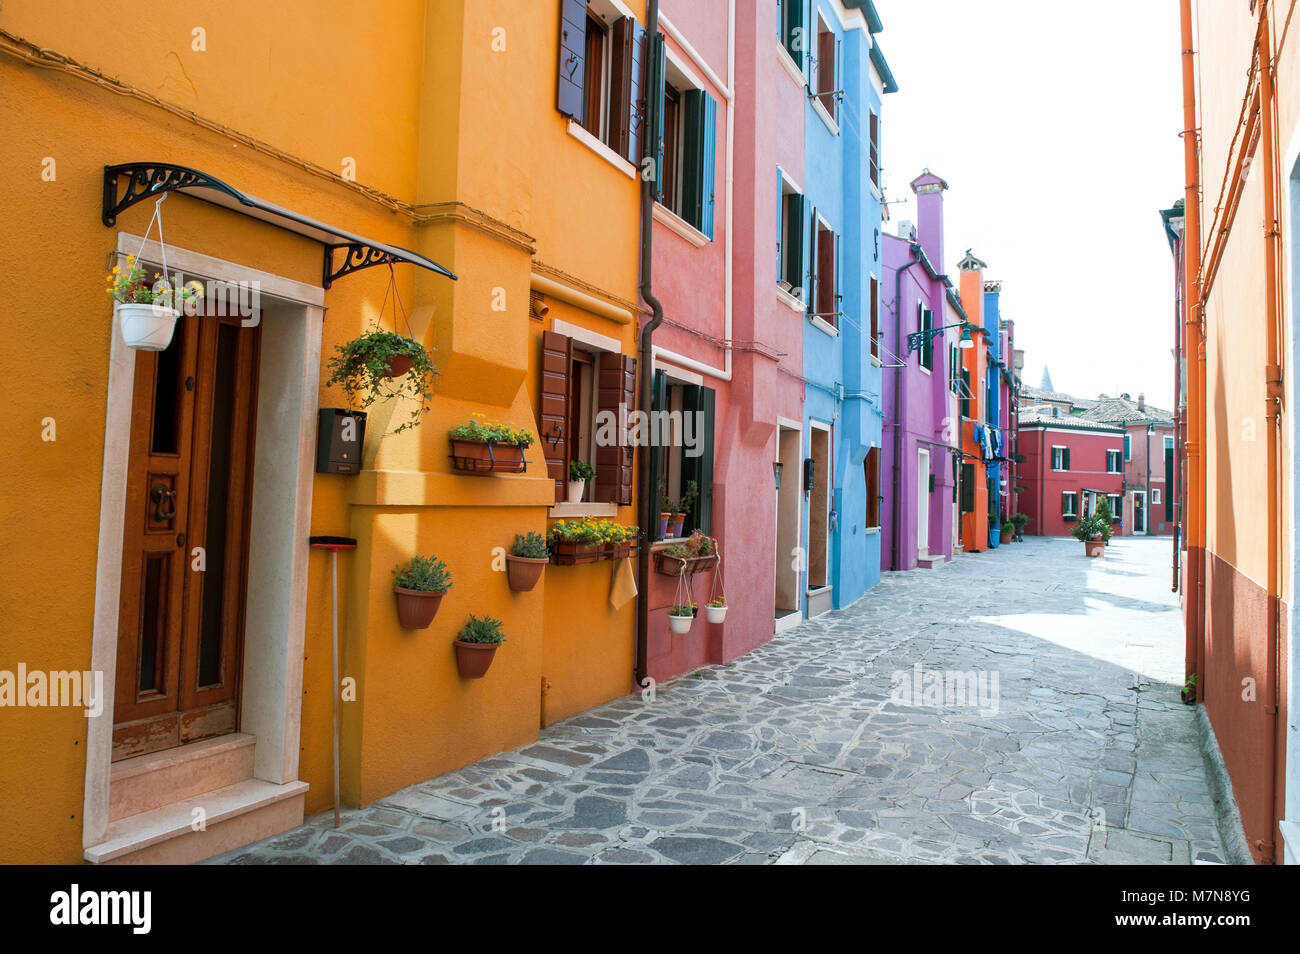 Venice, Burano island, Italy, Europe - typical street with colorful houses - Stock Image